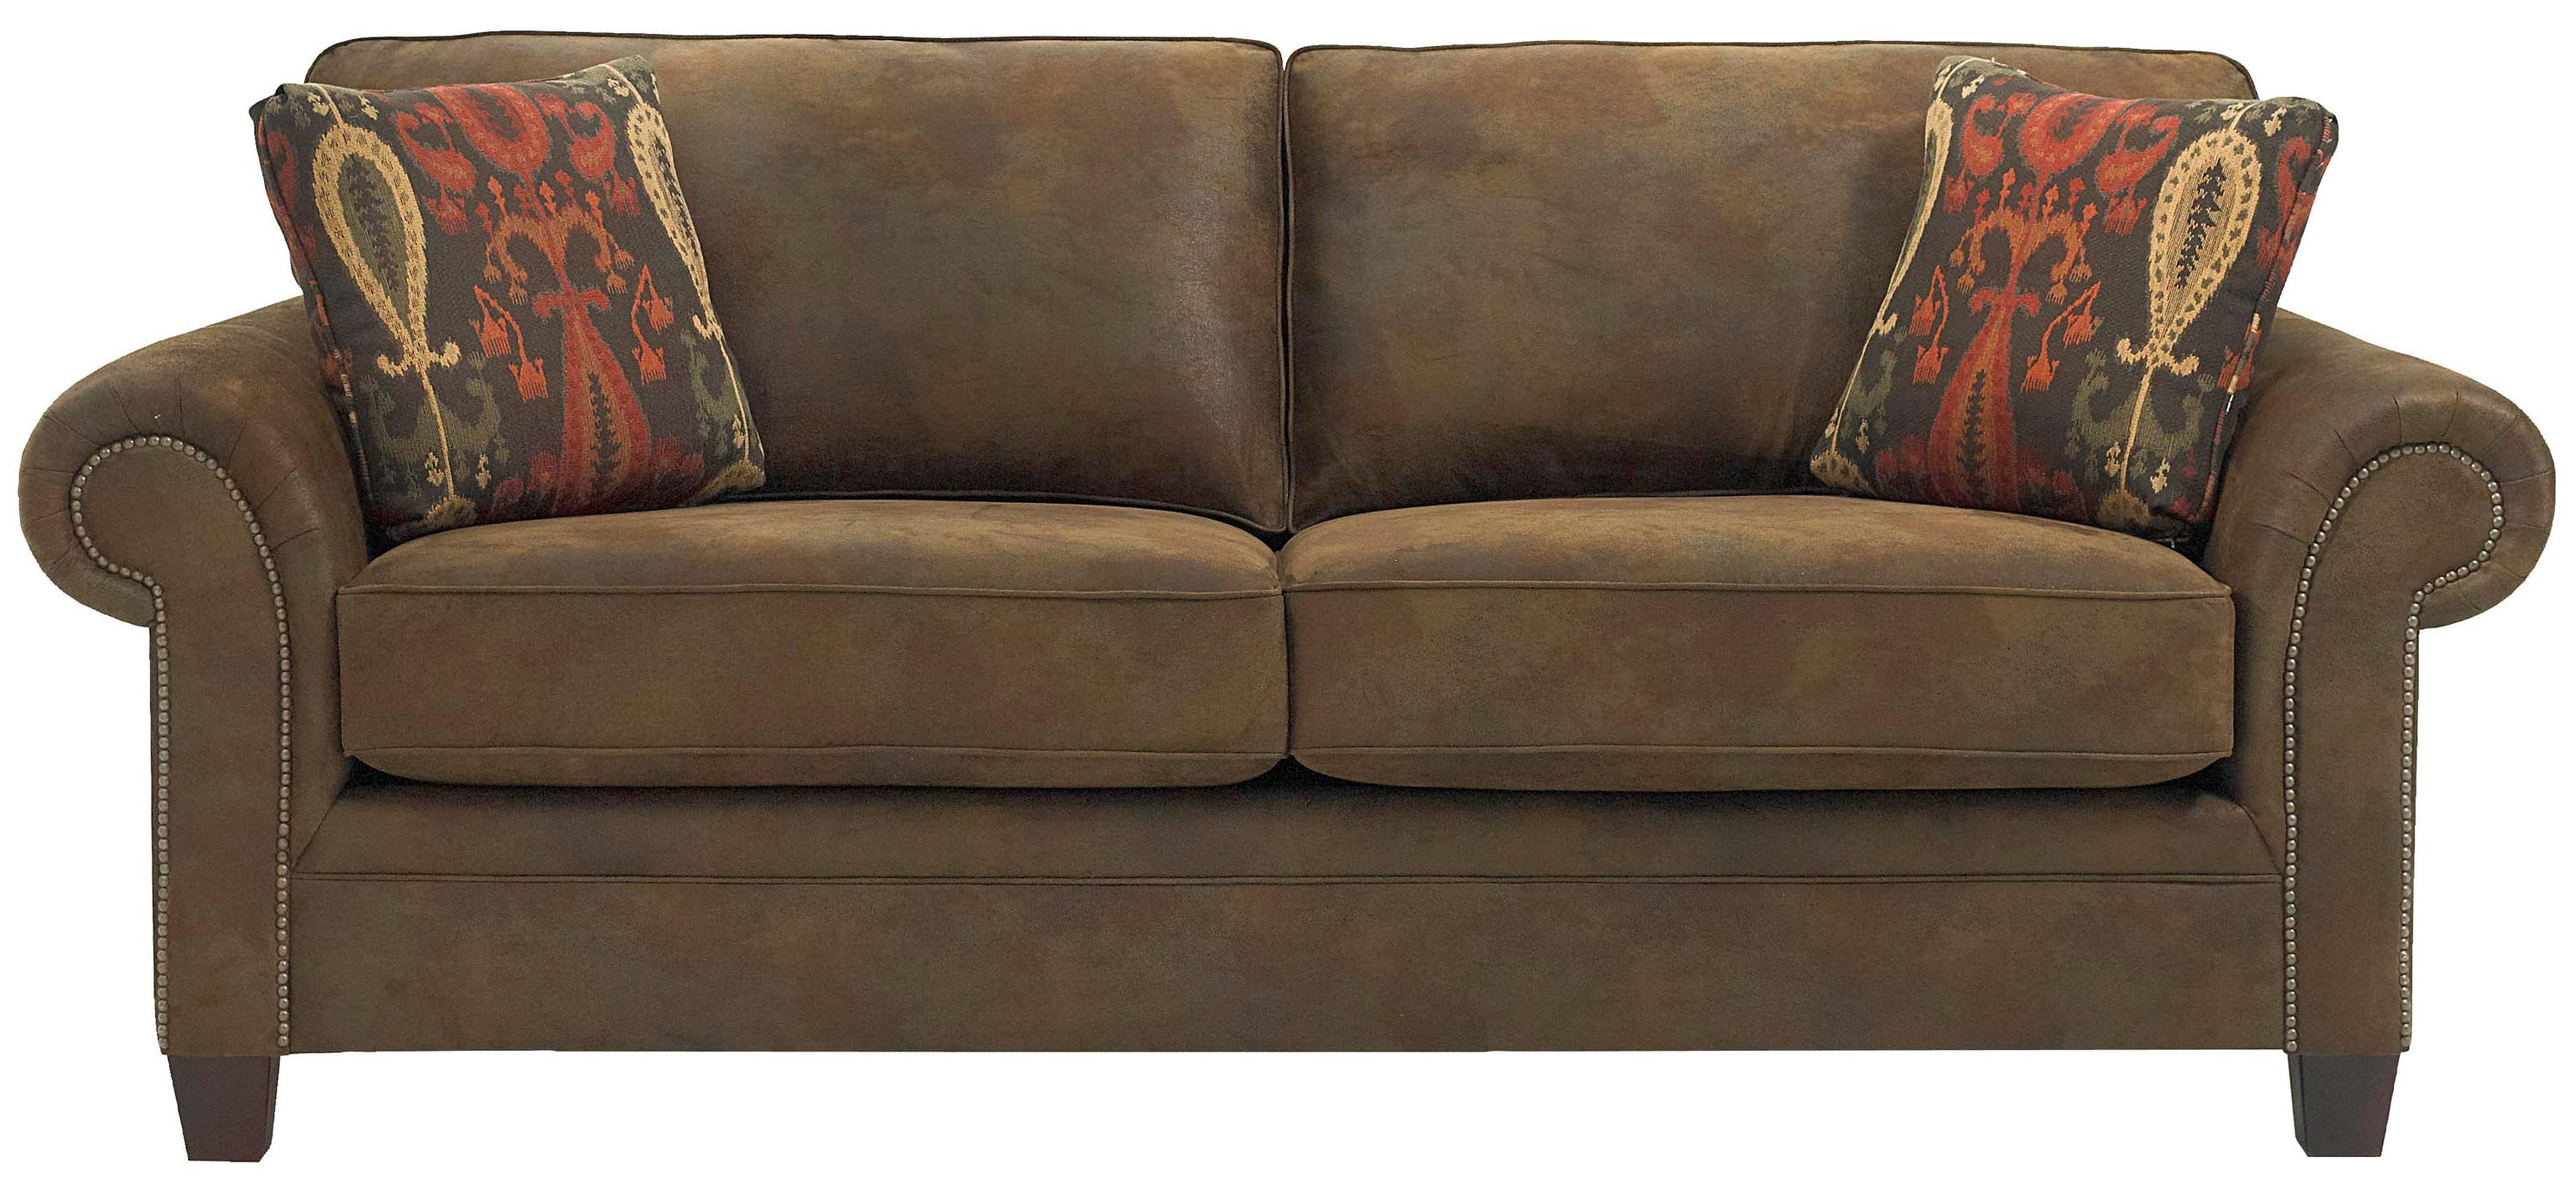 Broyhill Furniture Travis Transitional Sofa with Rolled Arms and ...